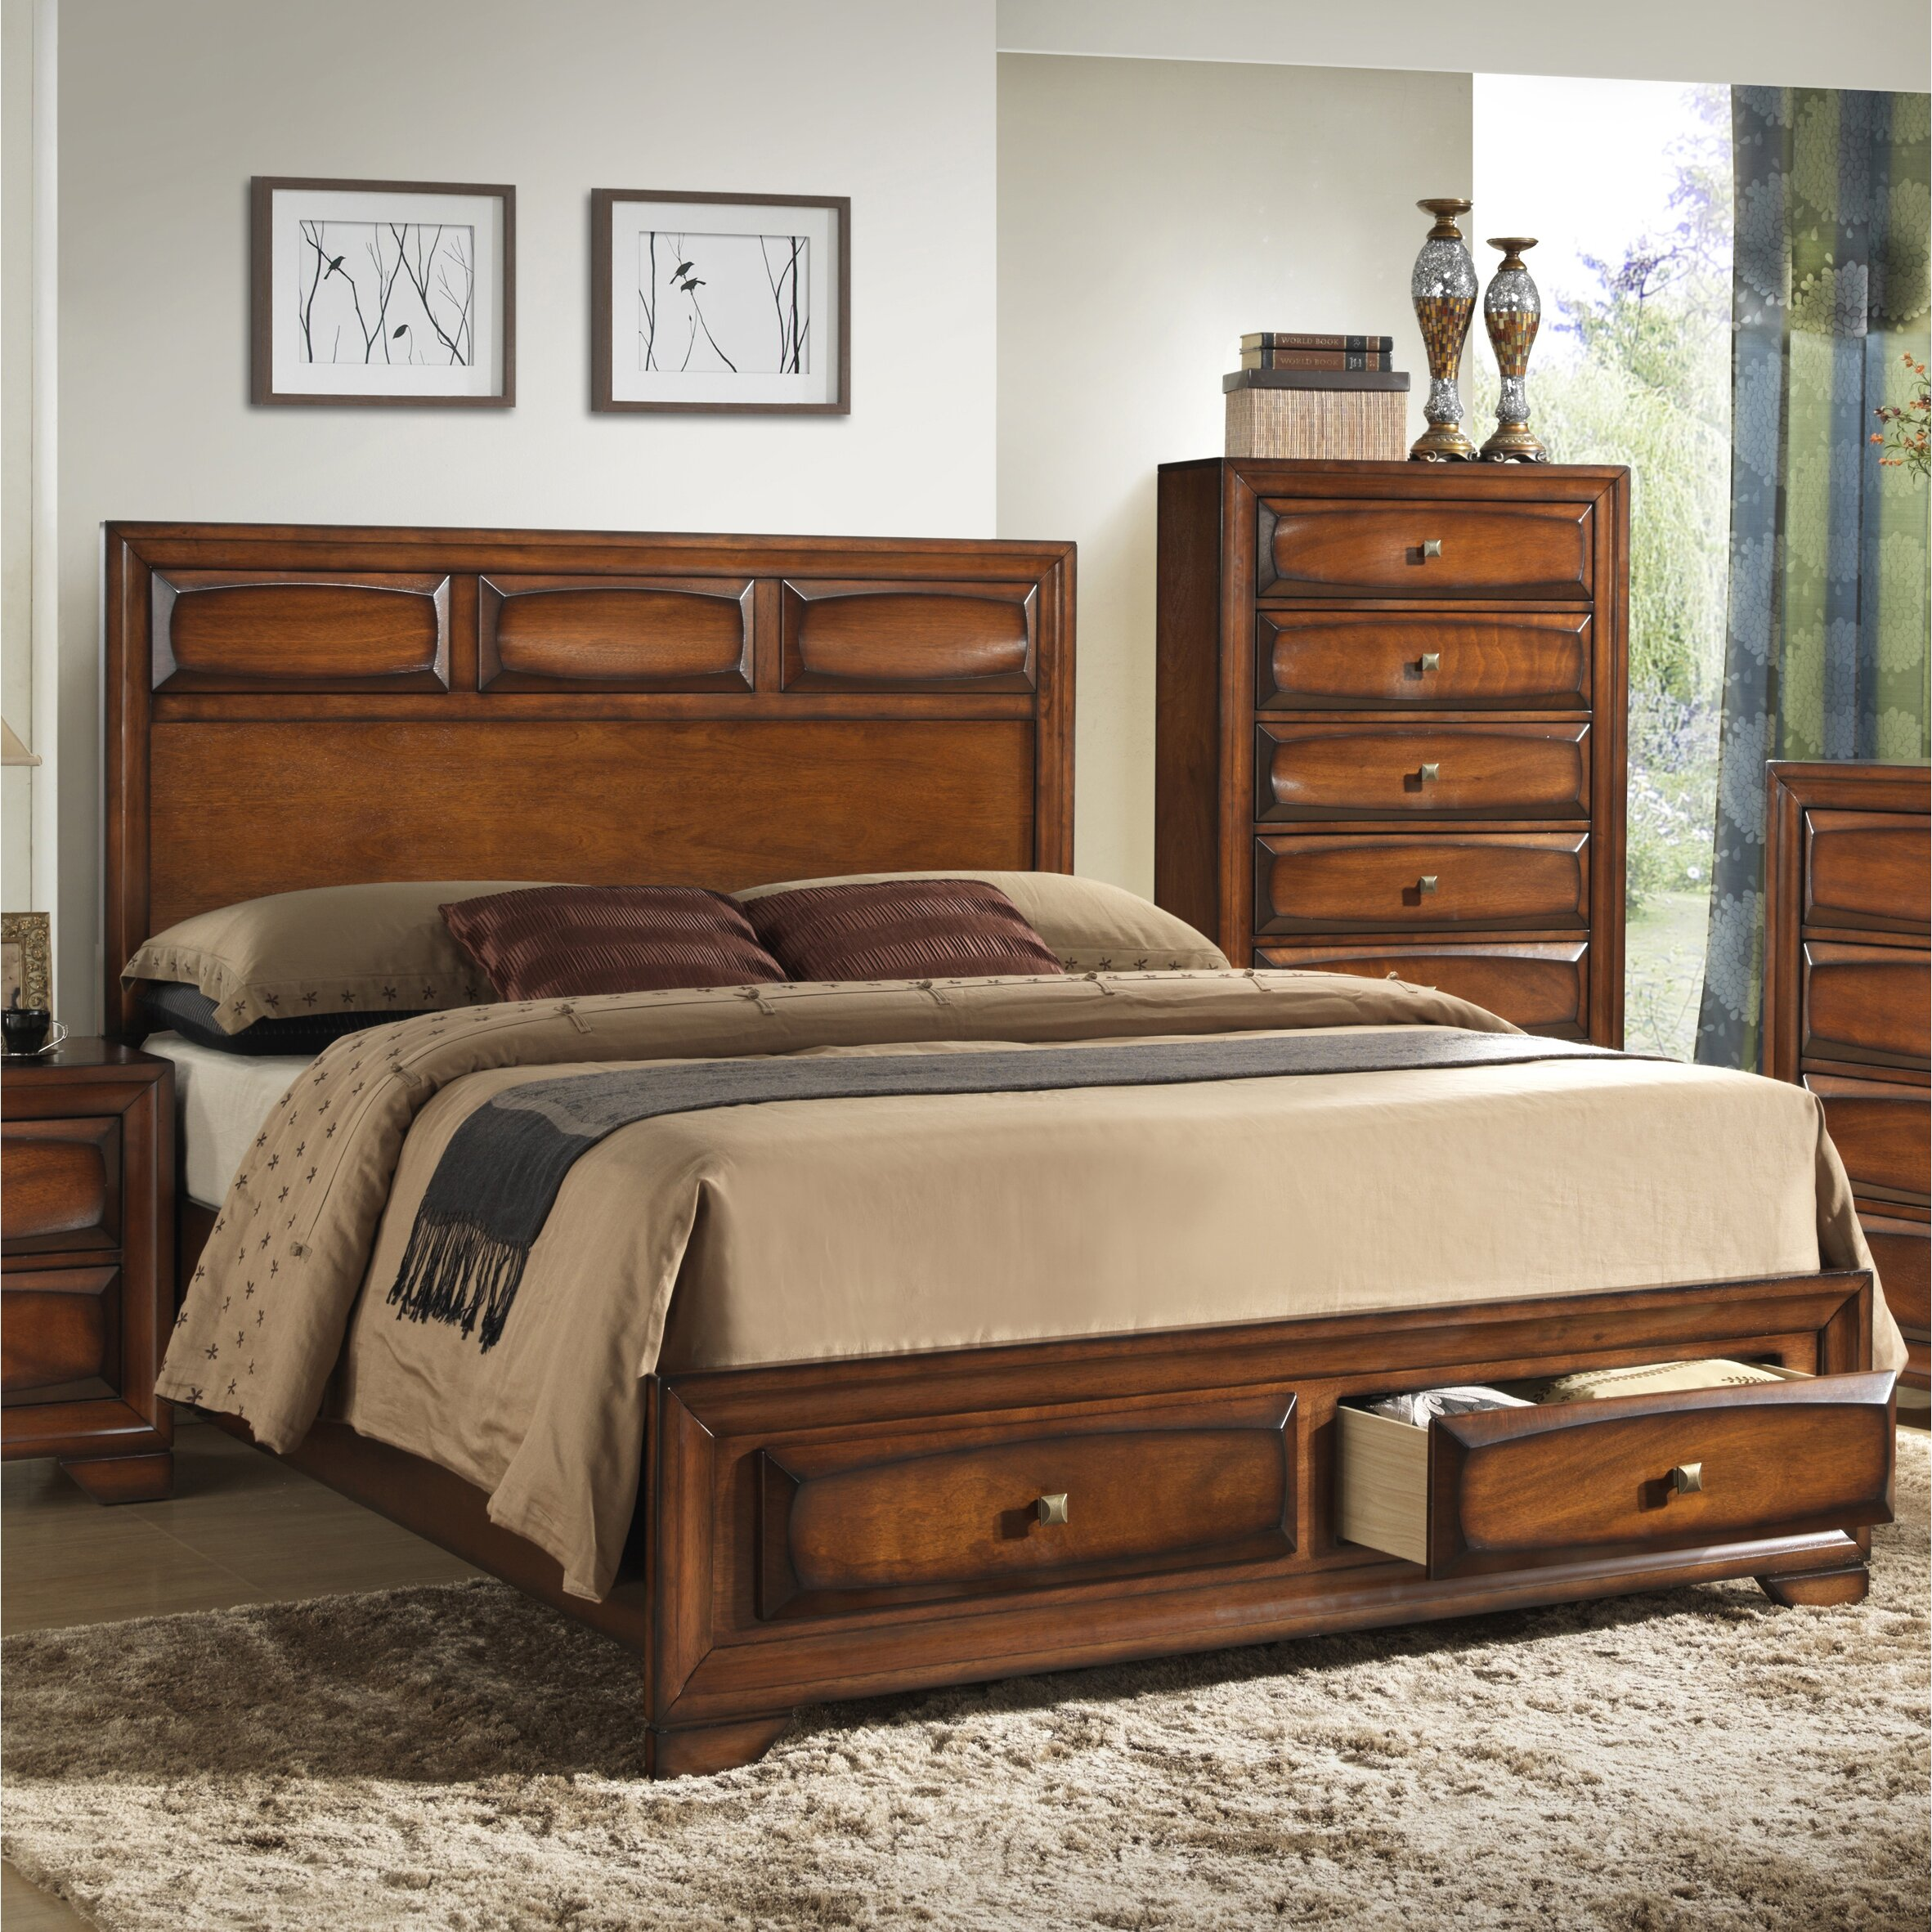 Storage Bedroom Furniture: Roundhill Furniture Oakland Storage Platform Bed